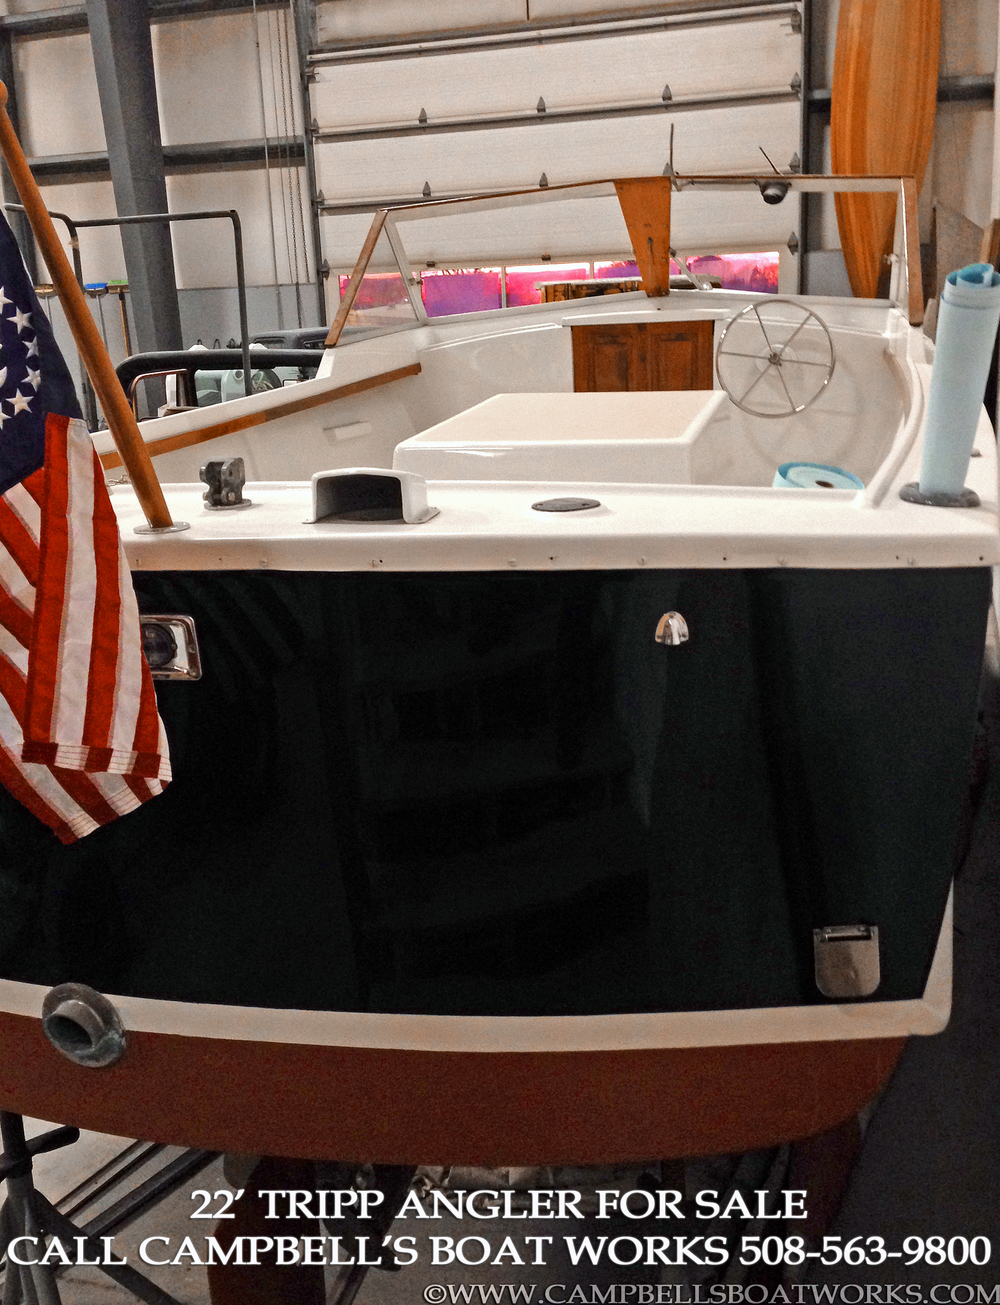 Downeast Boat For Sale 22' Tripp Angler 2014